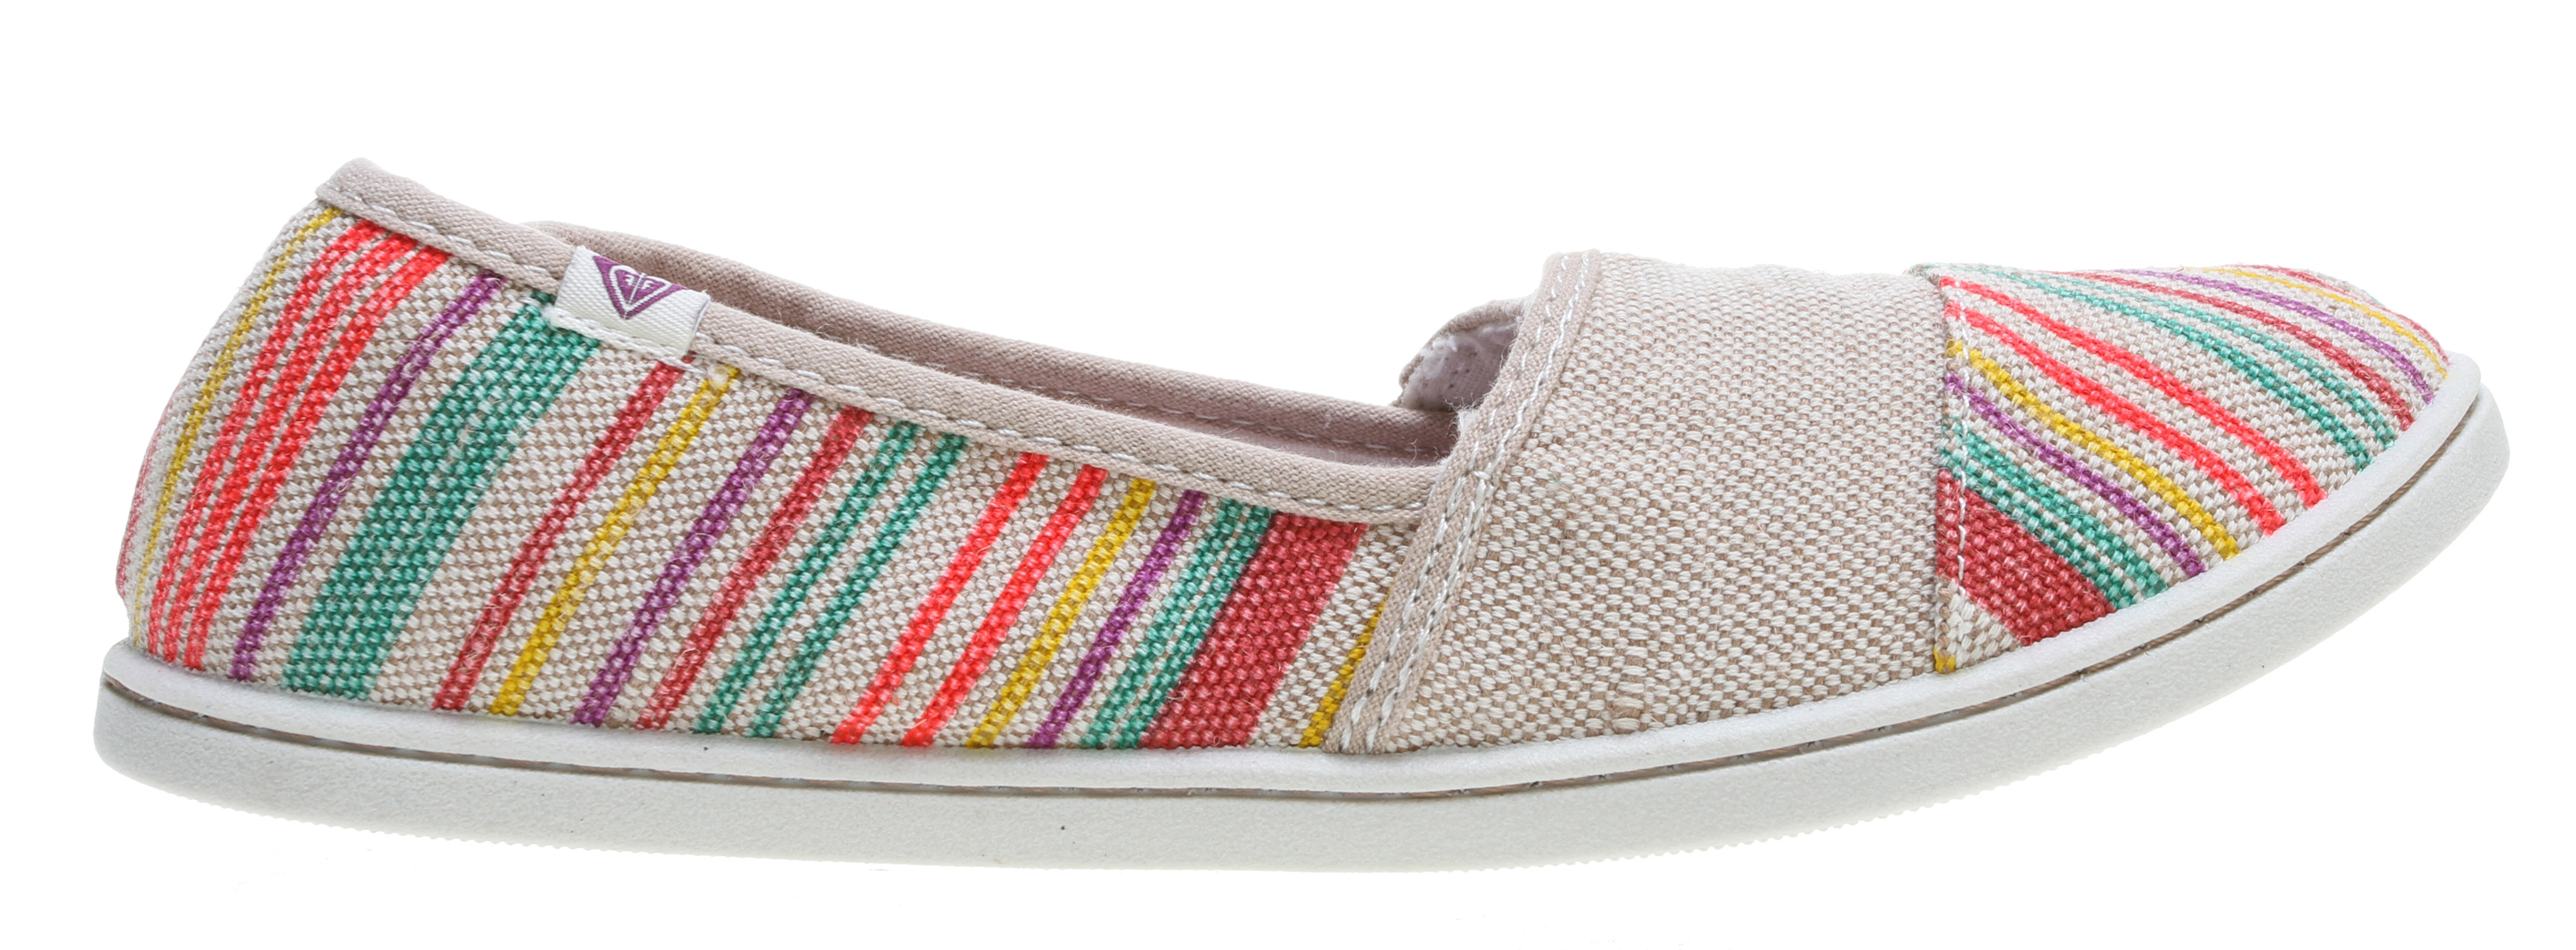 Surf Key Features of the Roxy Pier II Shoes: Washed twill or burlap upper woven logo flag Canvas lining Soft canvas padded insole with graphic logo print Flexible TPR injected outsole Hanging - $30.95